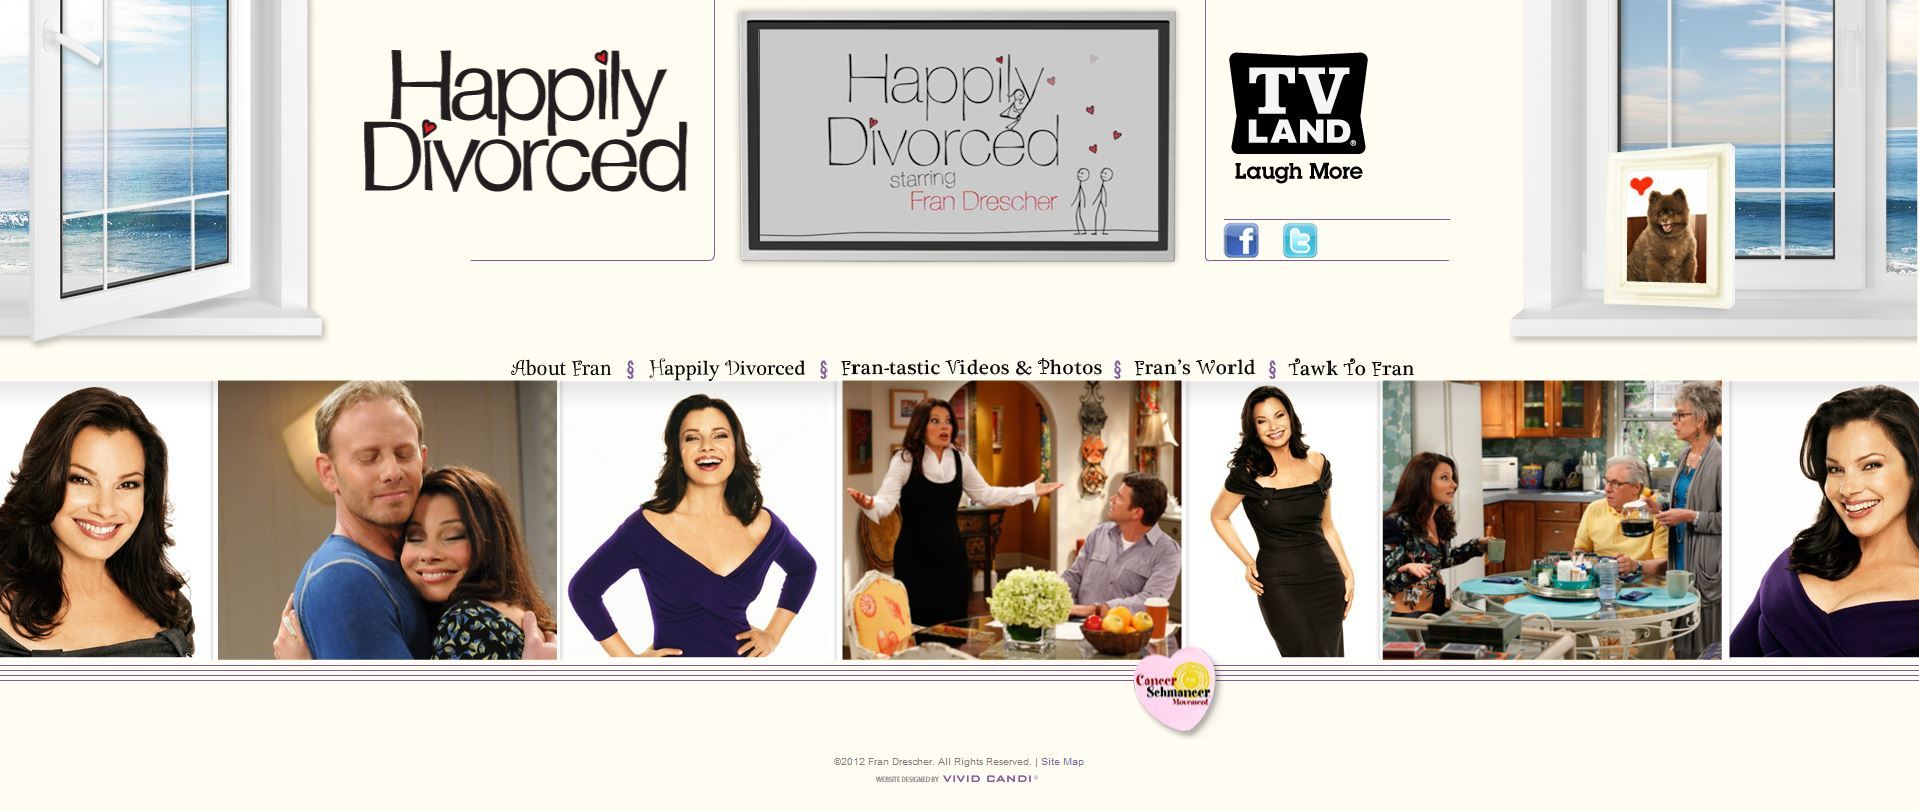 fran drescher website